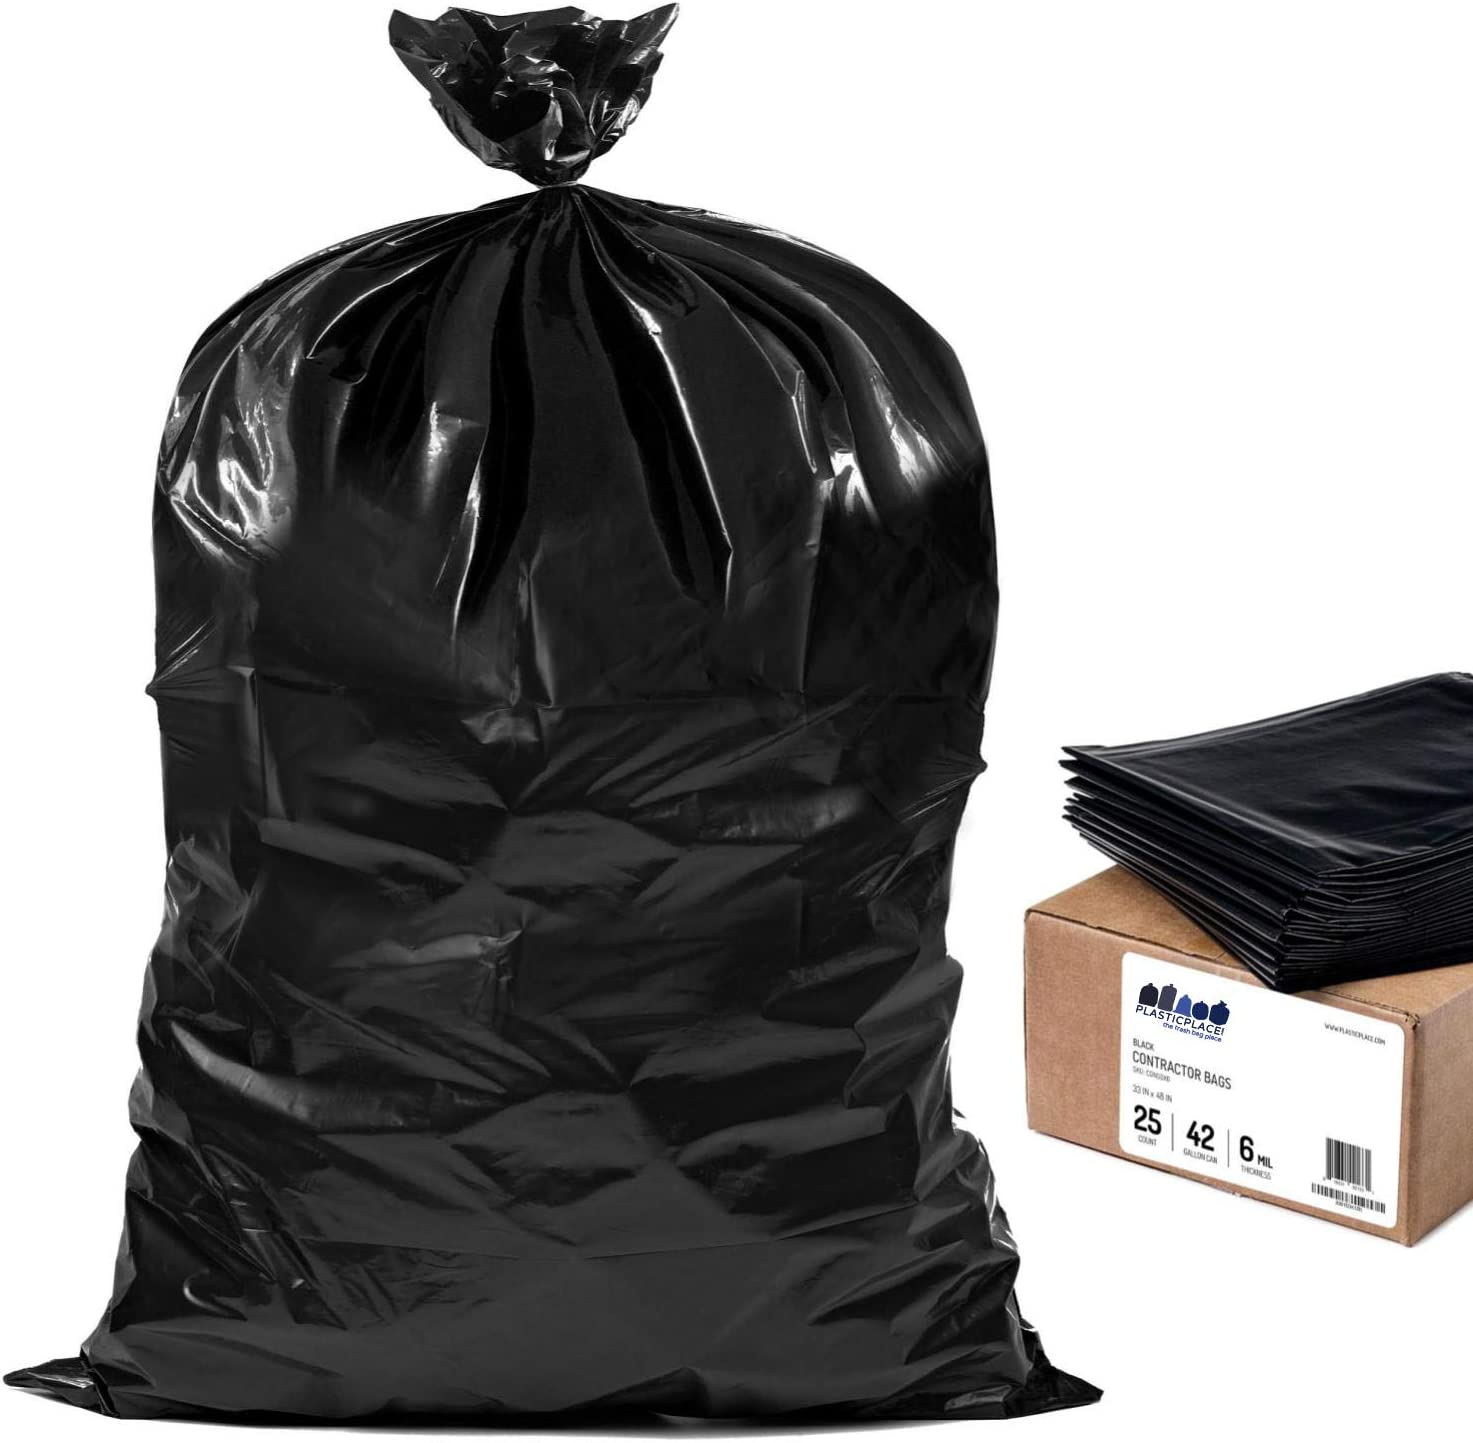 "Plasticplace Contractor Trash Bags 42 Gallon │ 6.0 Mil │ Black Heavy Duty Garbage Bag │ 33"" x 48"" (25 Count)"